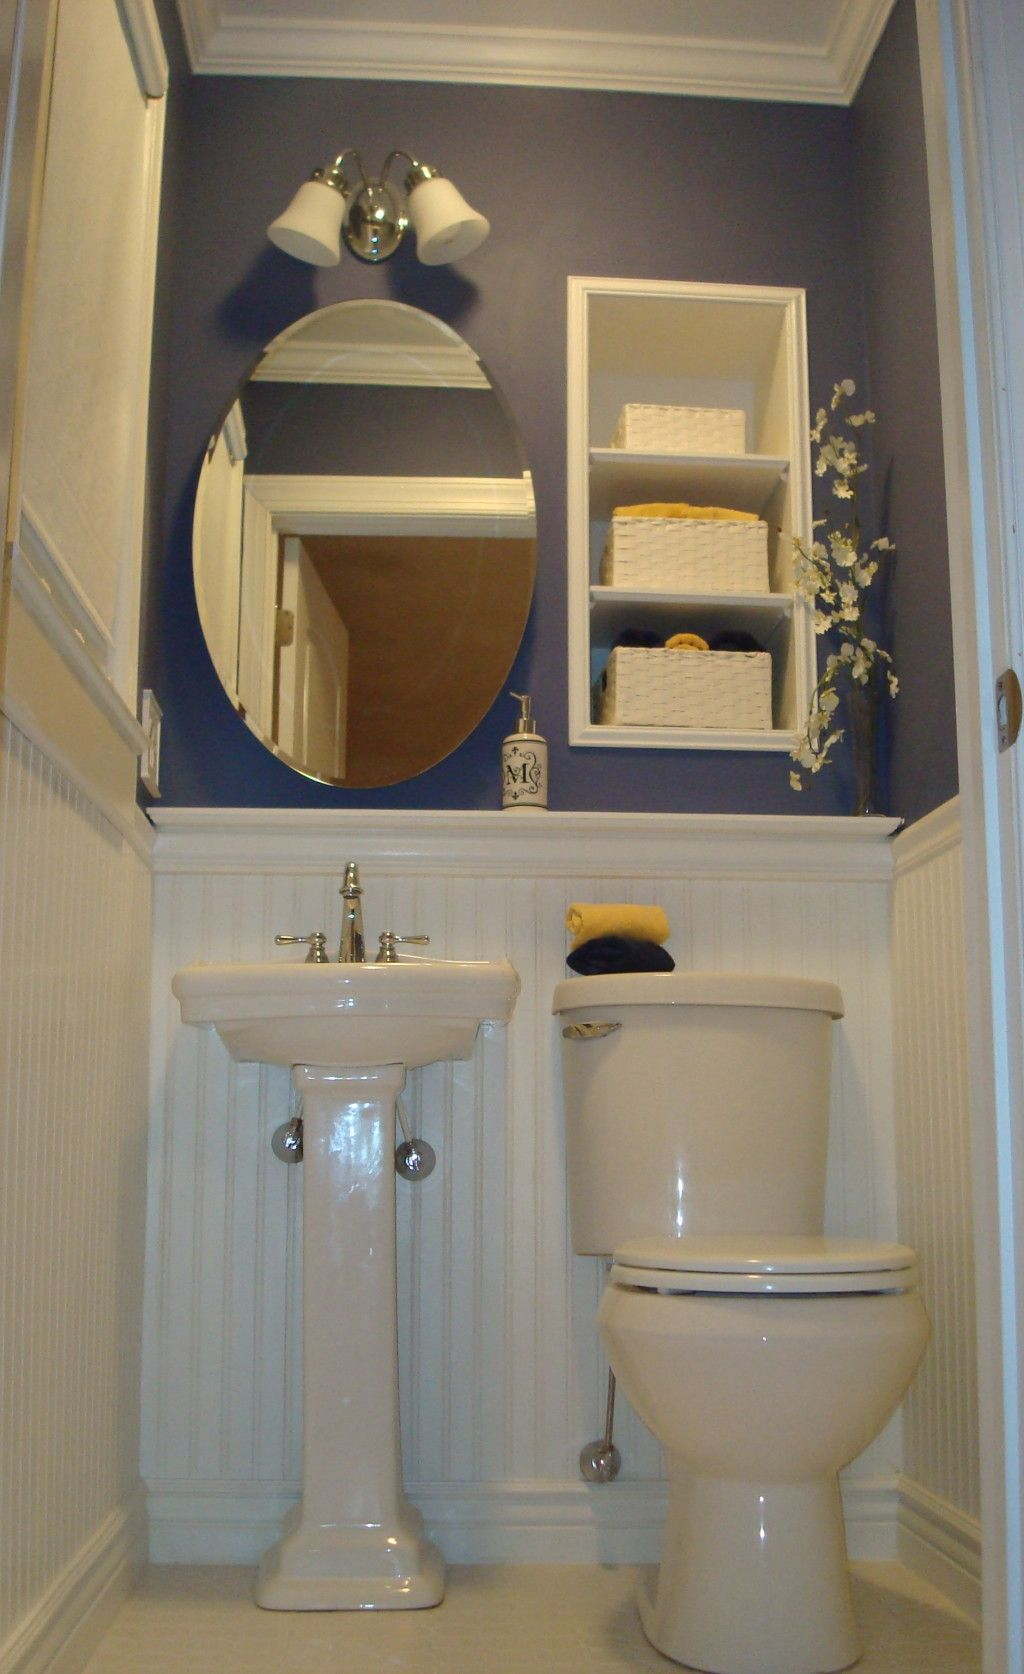 Bathroom Wall Decor Above Toilet Pictures Small Spaces